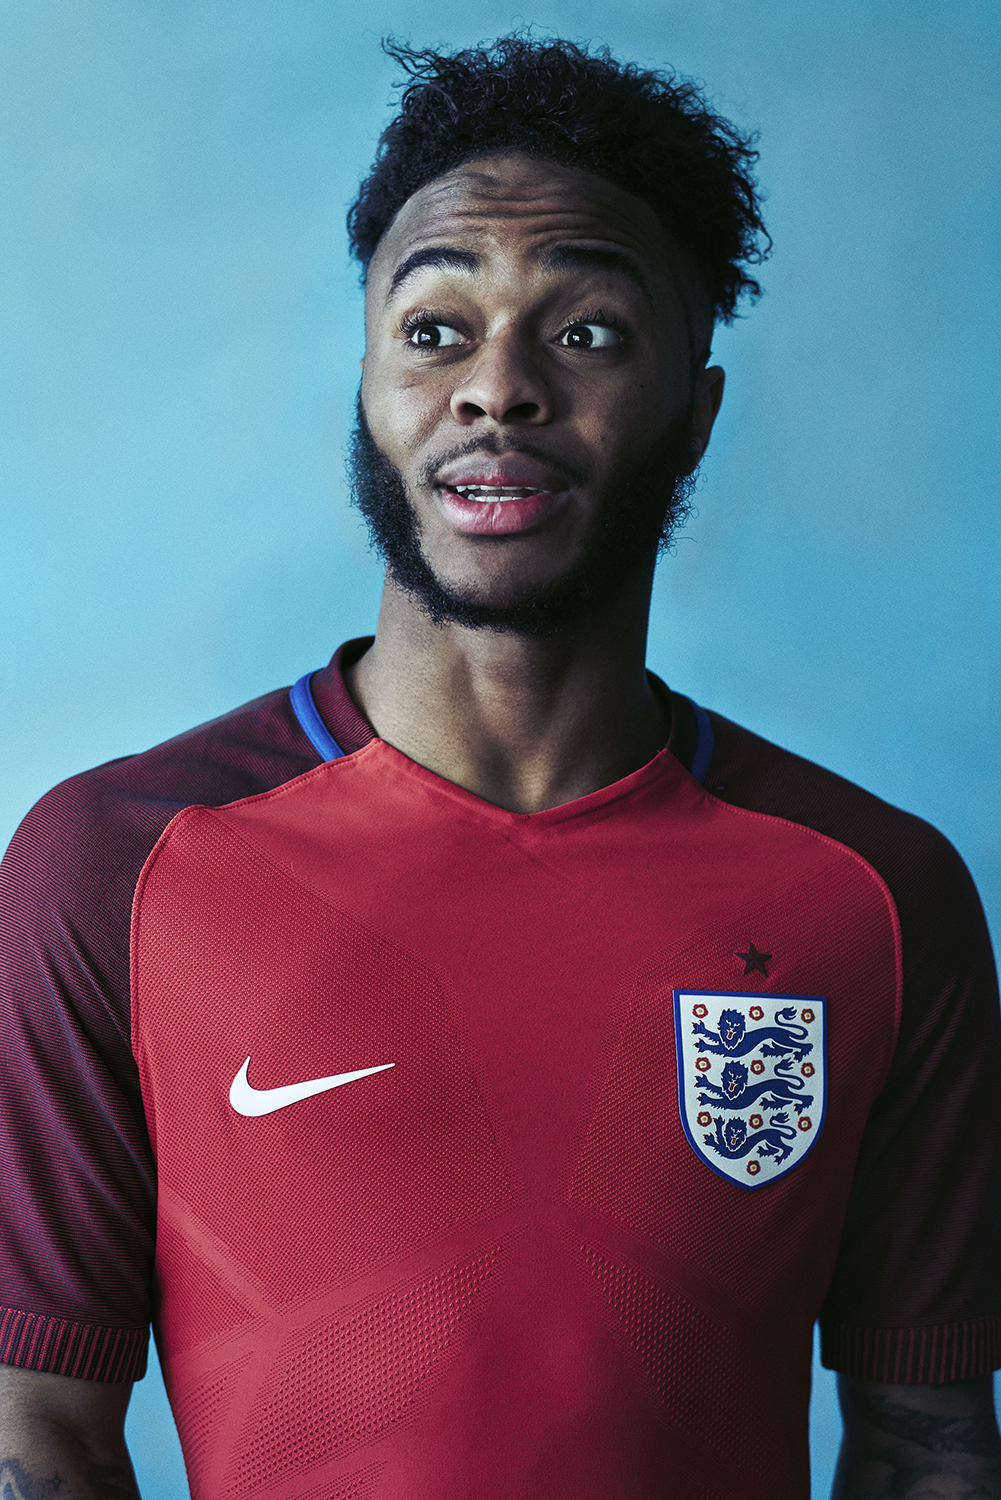 Soccerbible raheem sterling edd horder for The sterling